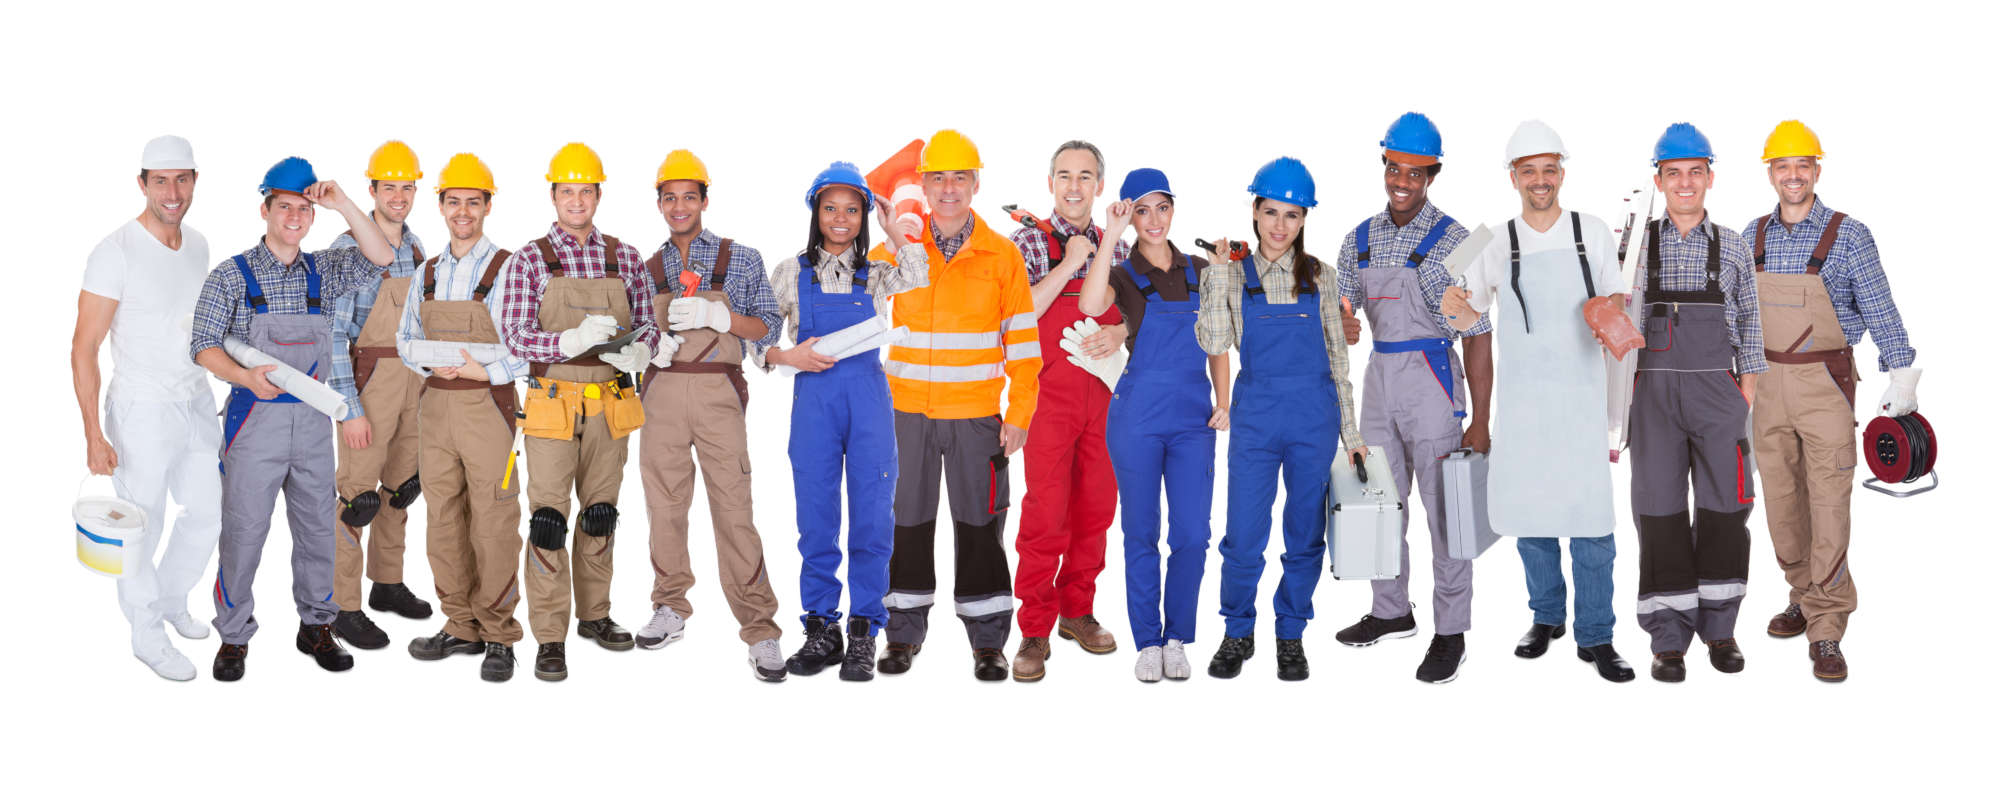 A group of workers of different types standing next to each other